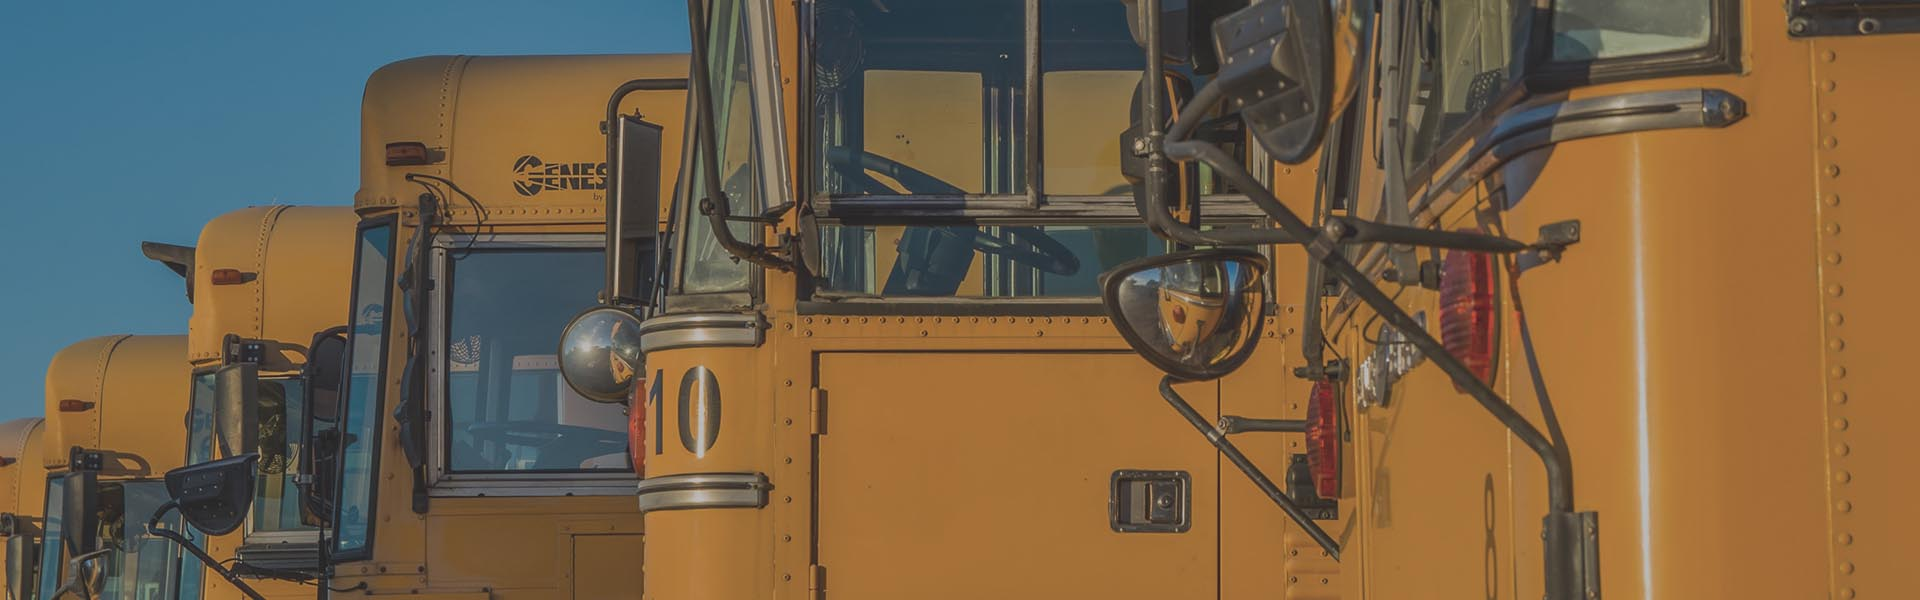 School Bus Header Image